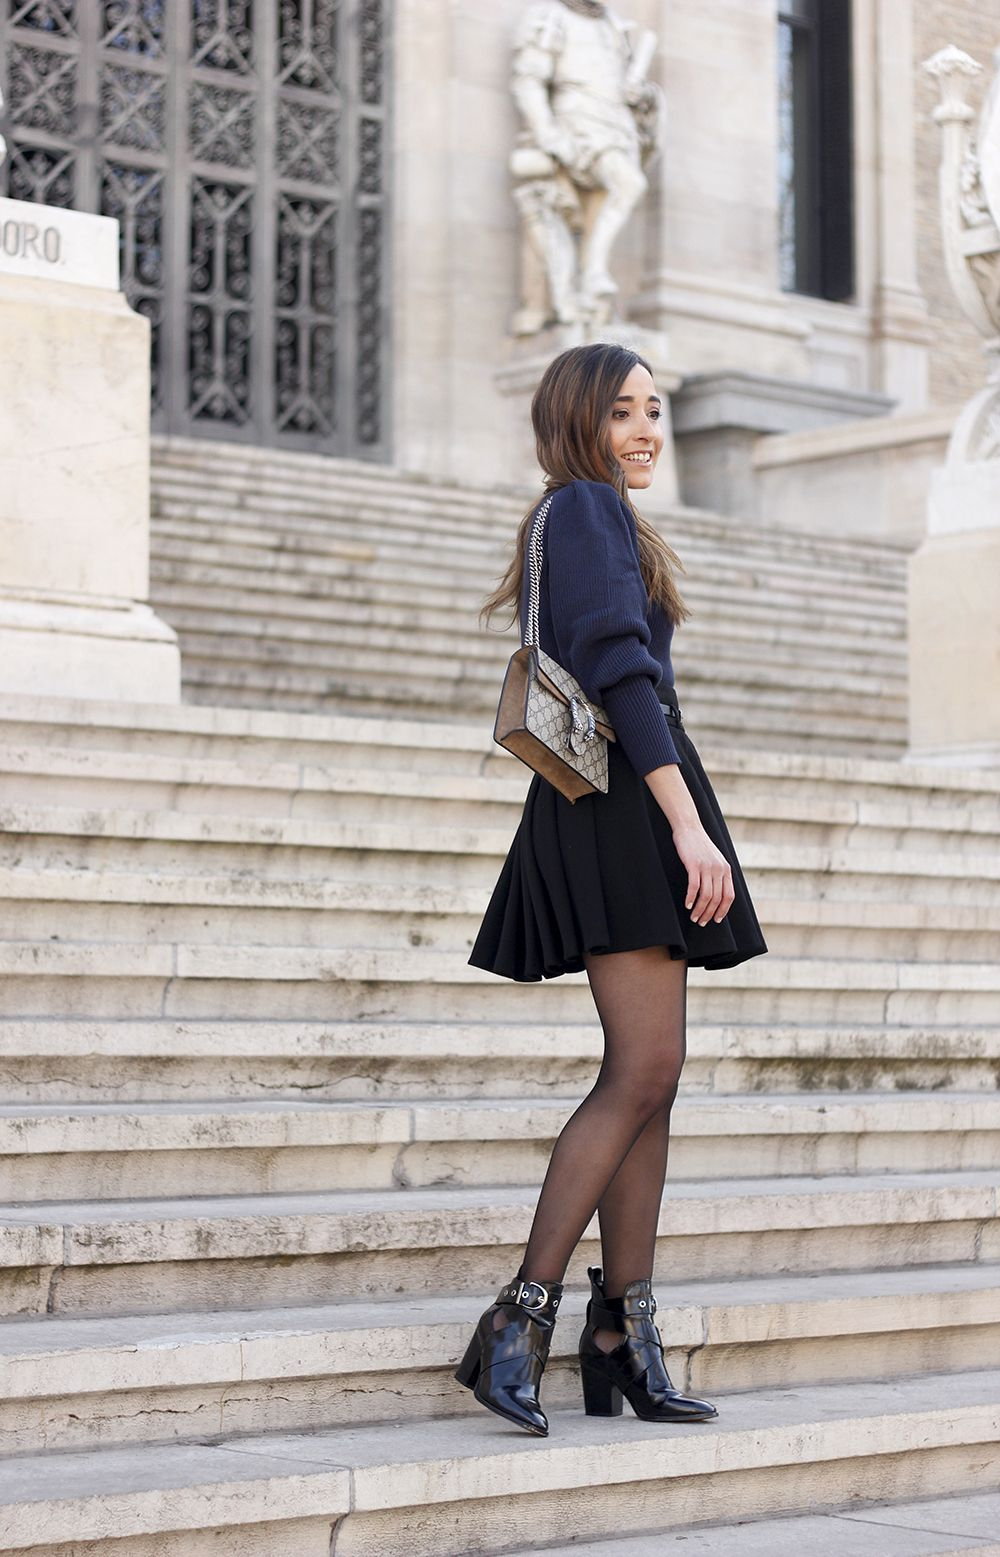 Blu Sweater Black Skirt Gucci Bag Black Ankle Boots Street Style Outfit 20191 Street Style Outfit Blogger Outfits Clothes [ 1557 x 1000 Pixel ]